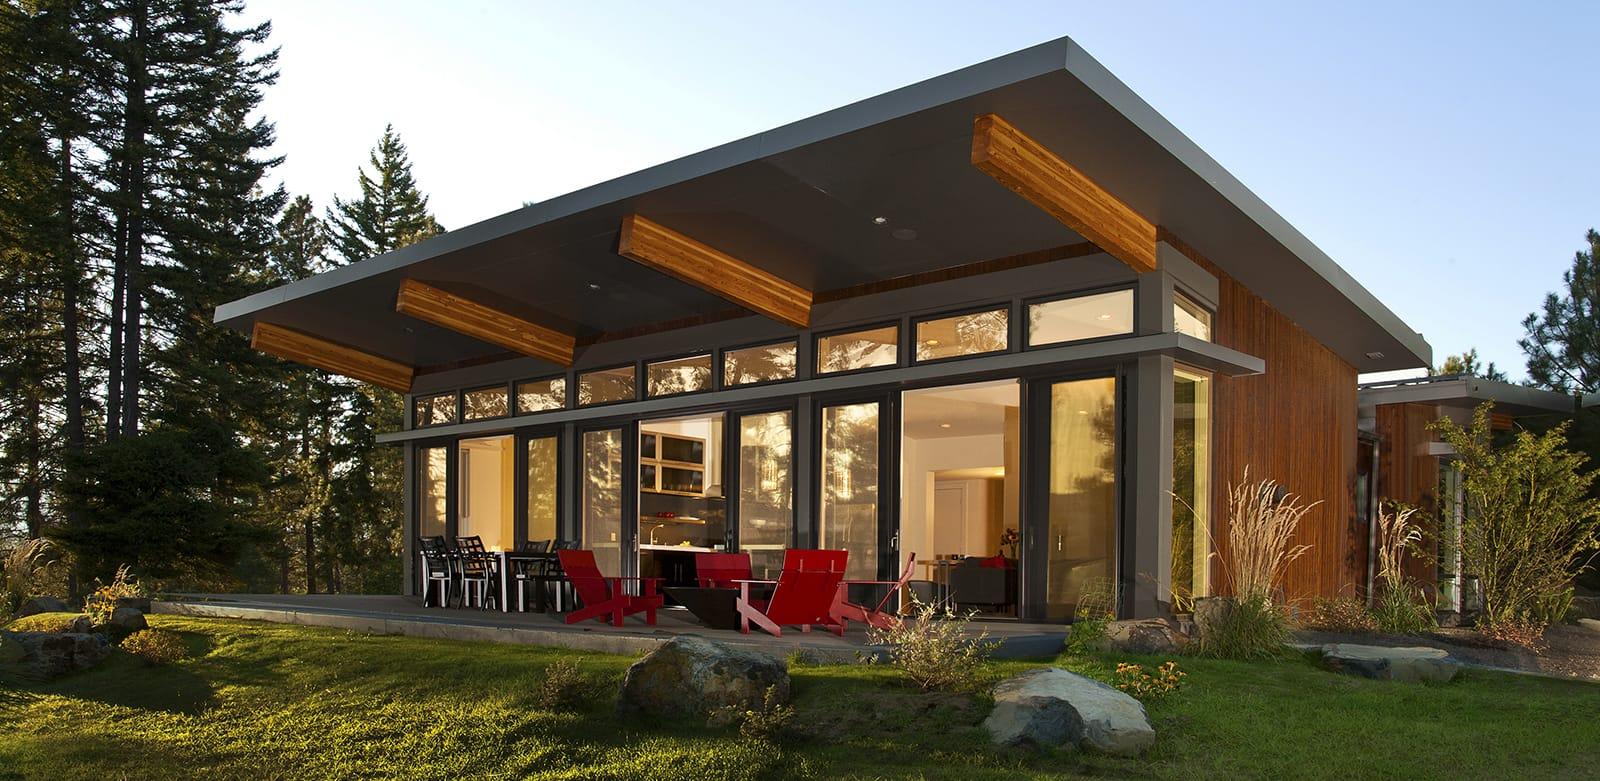 The 9 Best Modular Home Builders On The Market Better Housekeeper